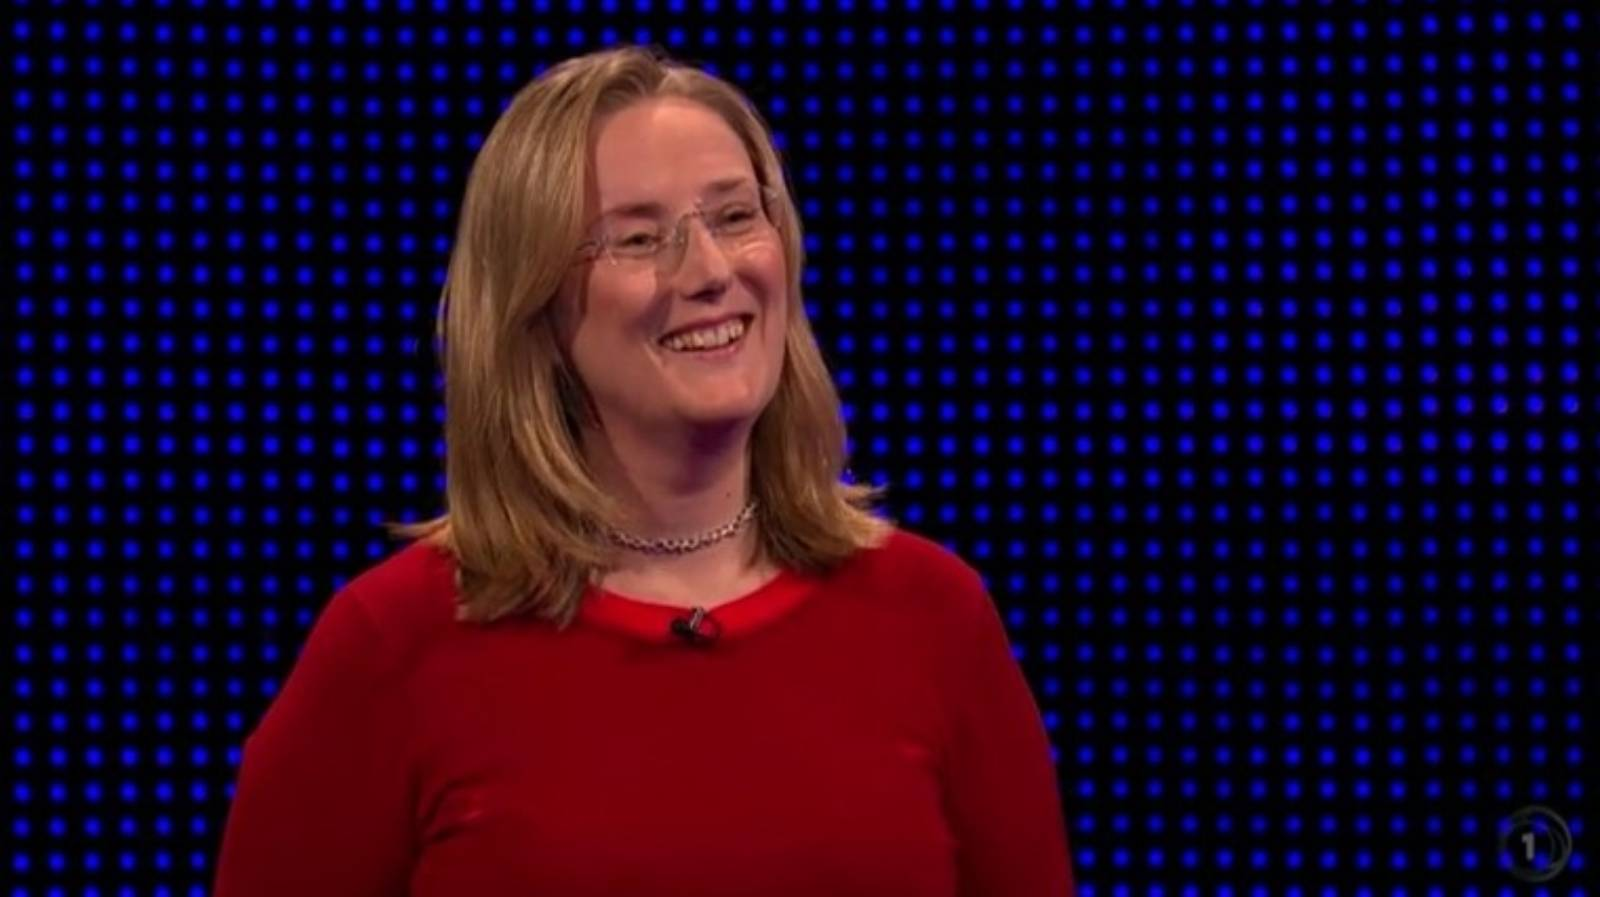 The Chase host baffled by Kiwi contestant's accent